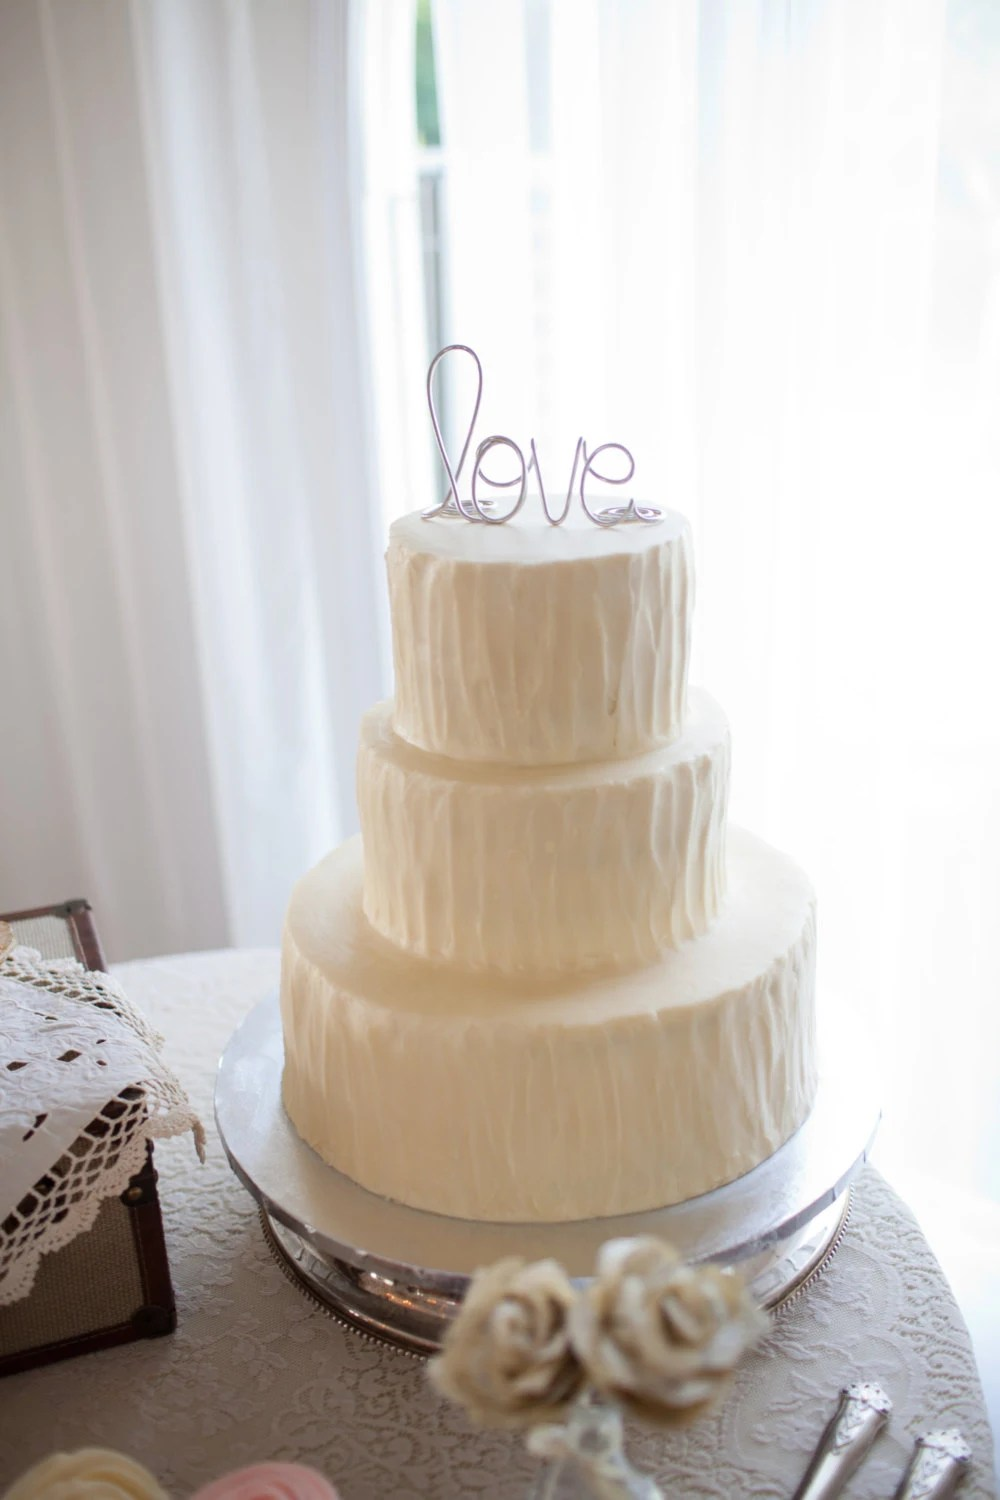 Simple Classy Love Wedding Cake Topper   Etsy image 0